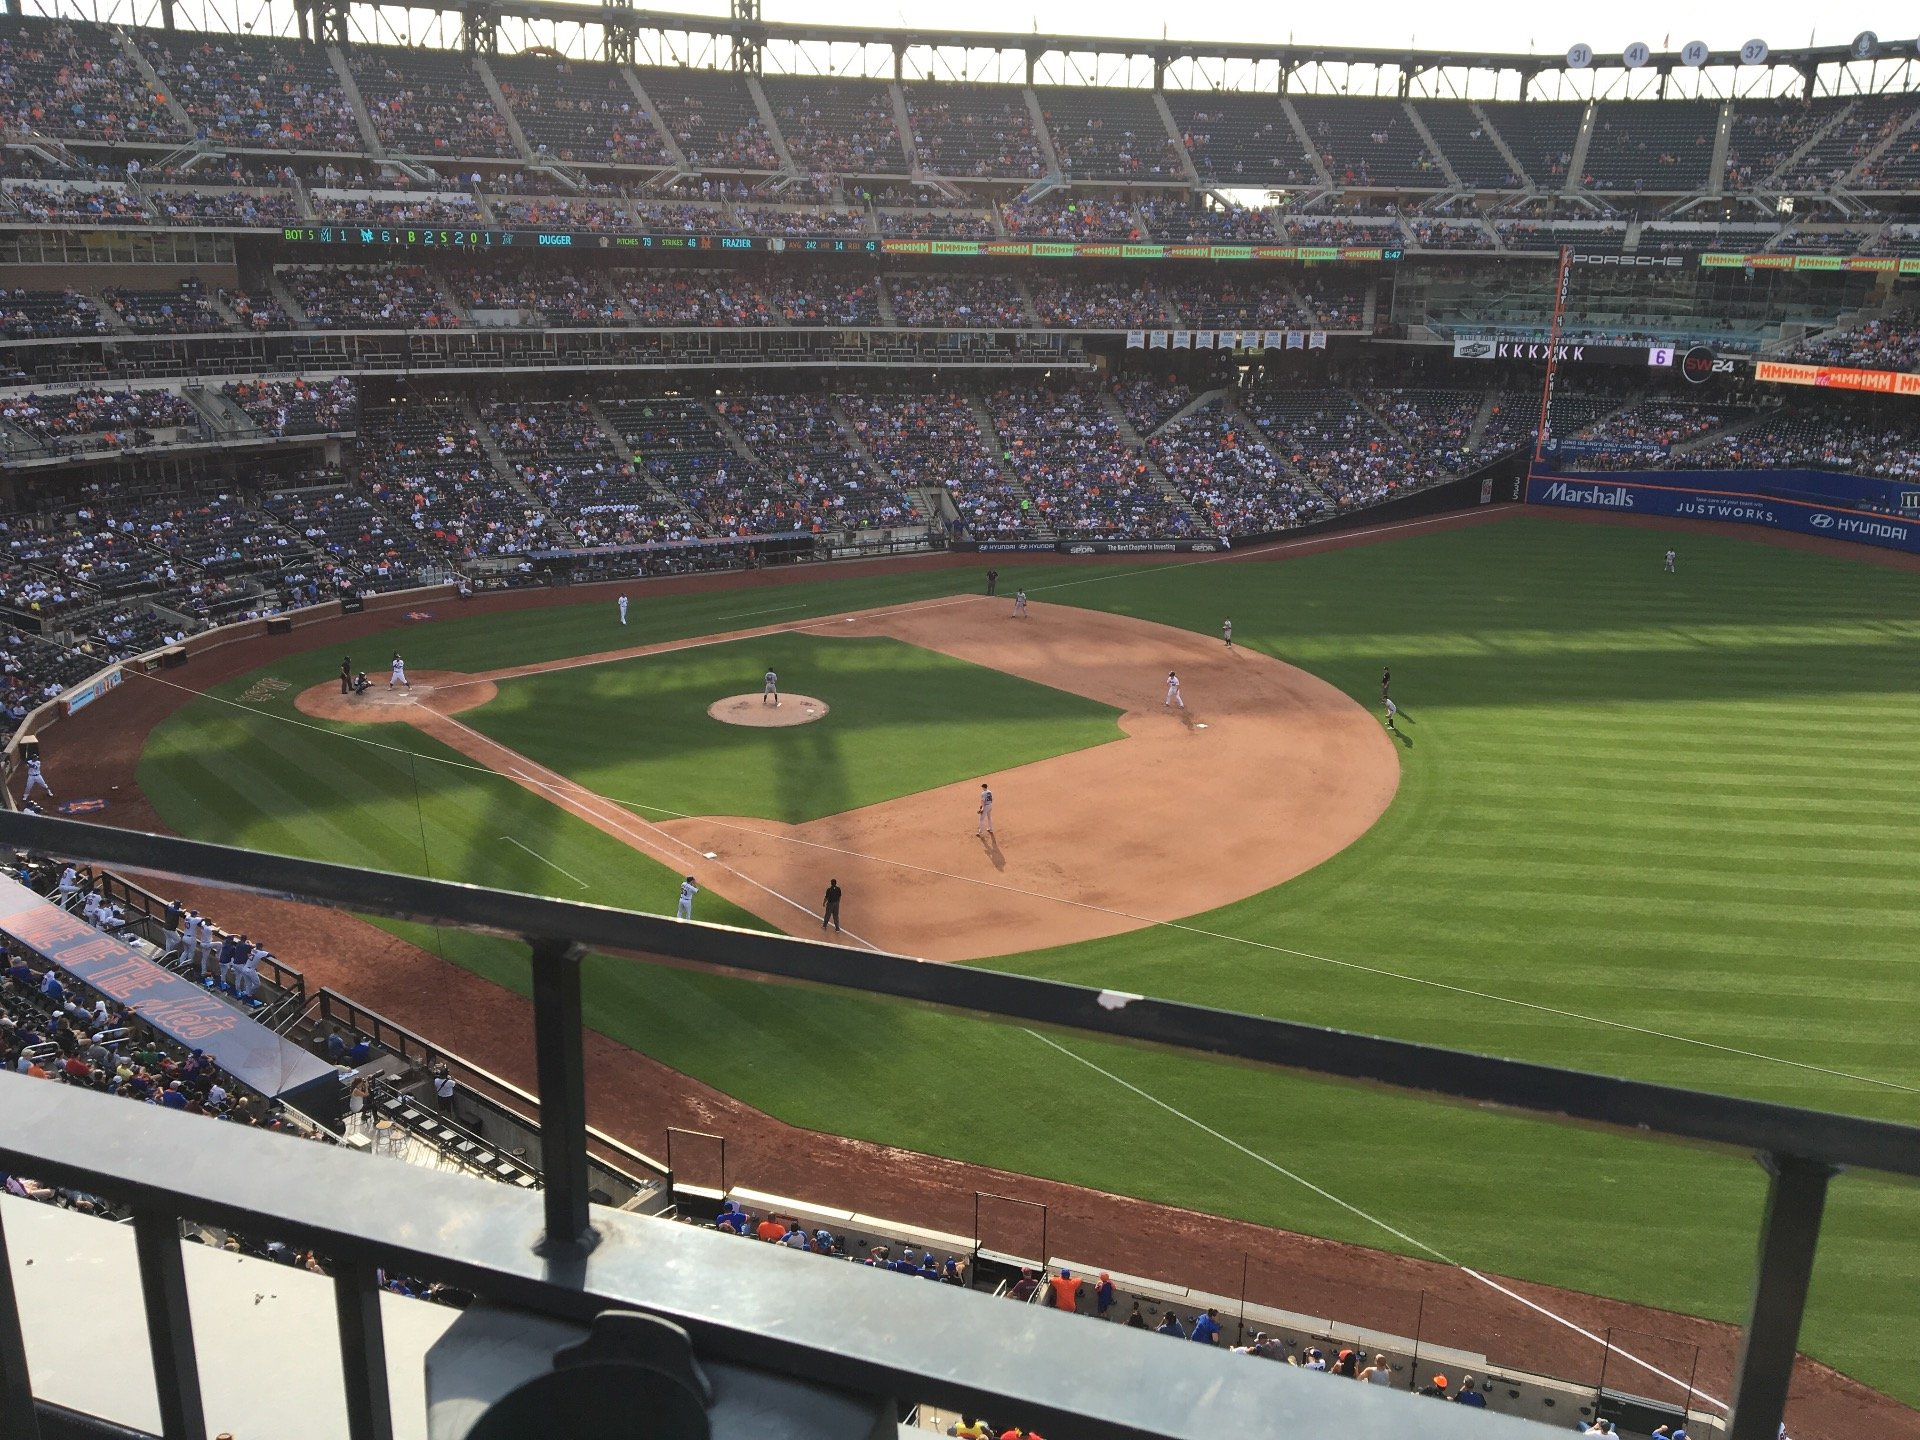 Citi Field Section 403 Row 1 Seat 13